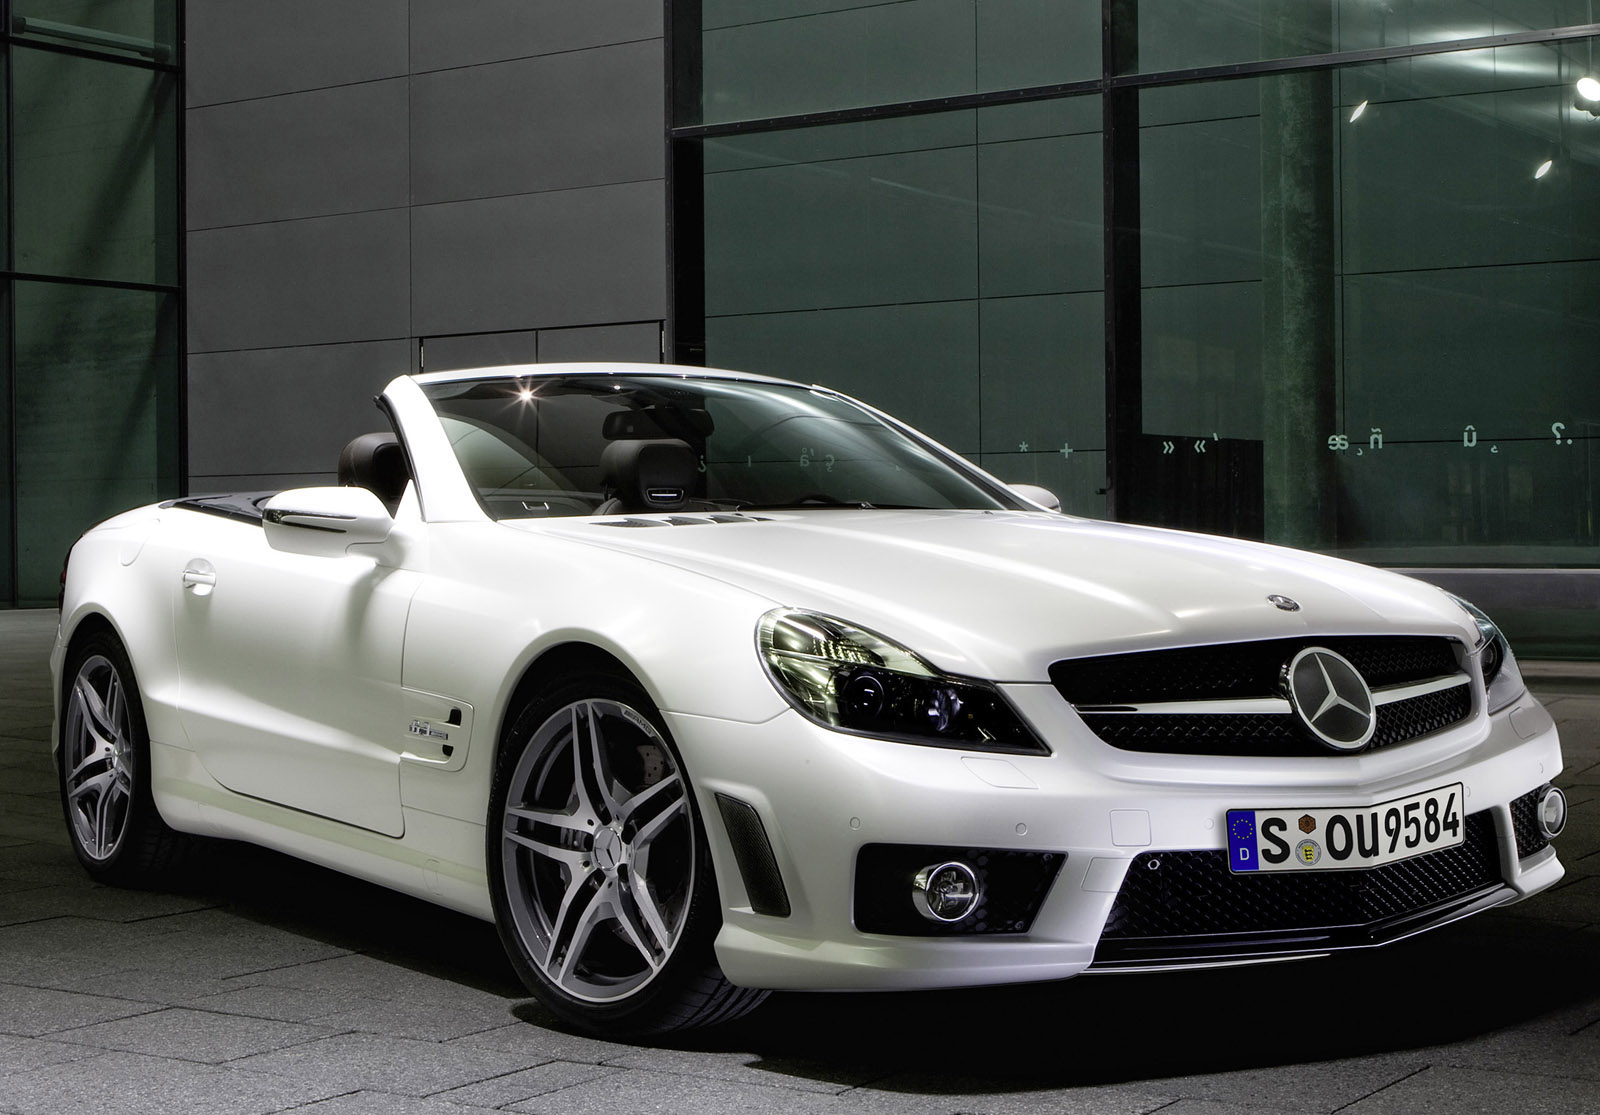 Action cars luxury of mercedes benz car for Mercedes benz cars images